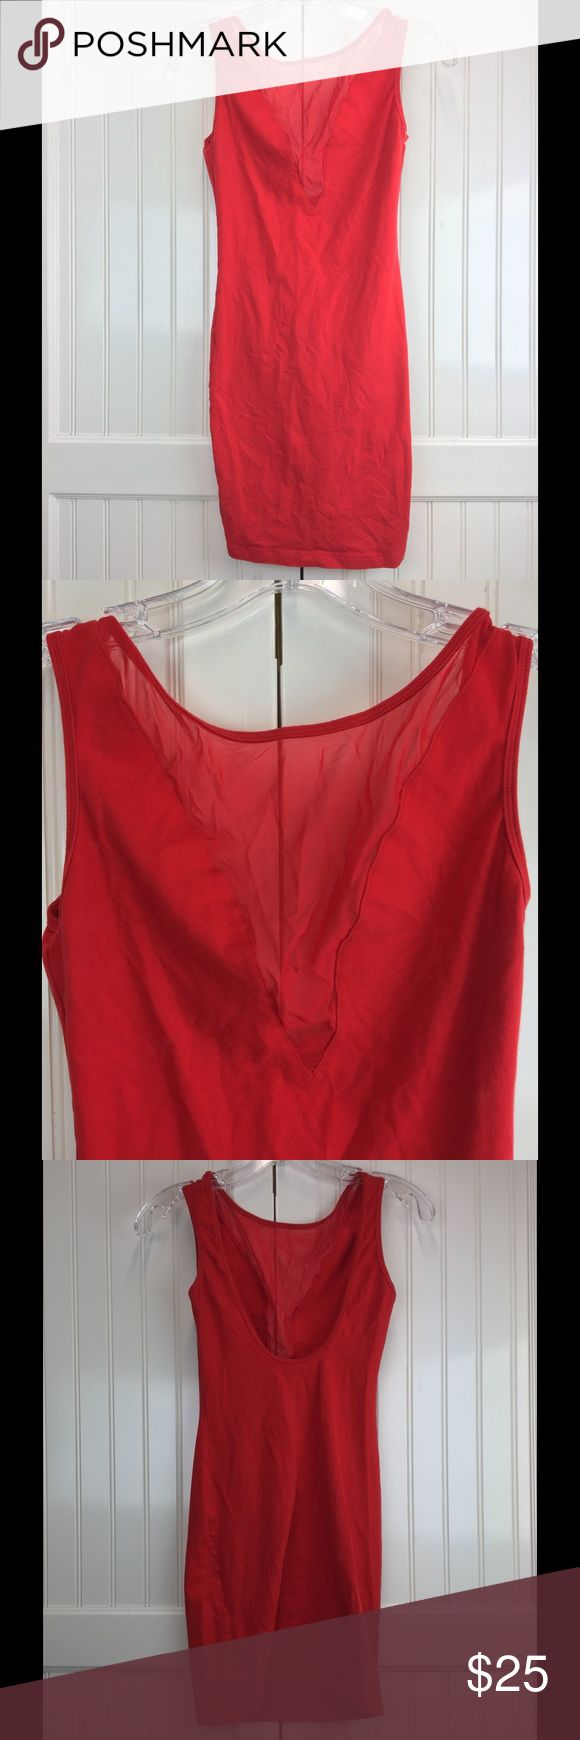 Red American Apparel Dress Dress is in great condition. Worn once. American Apparel Dresses Mini